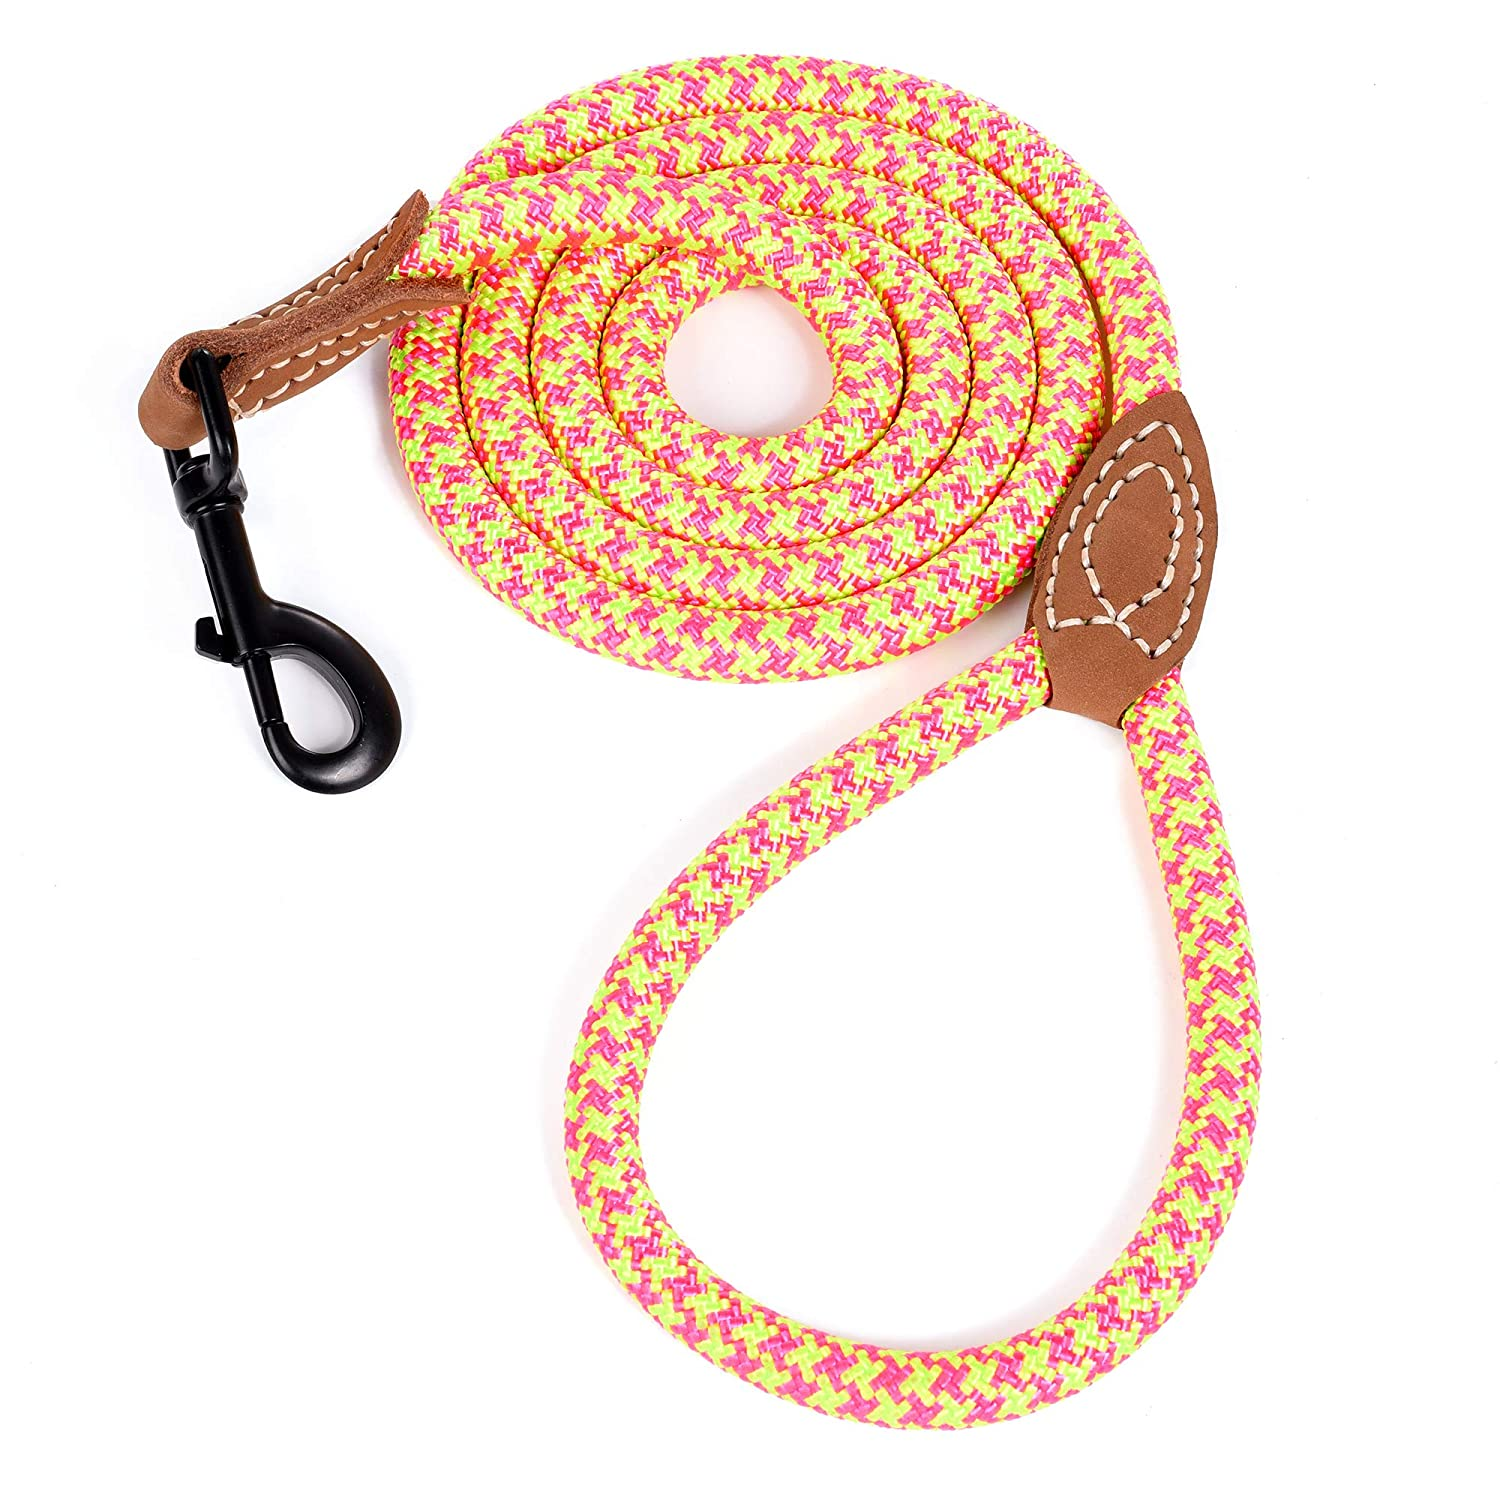 White, 5 FT Mile High Life Leather Tailor Handle Mountain Climbing Dog Rope Leash with Heavy Duty Metal Sturdy Clasp